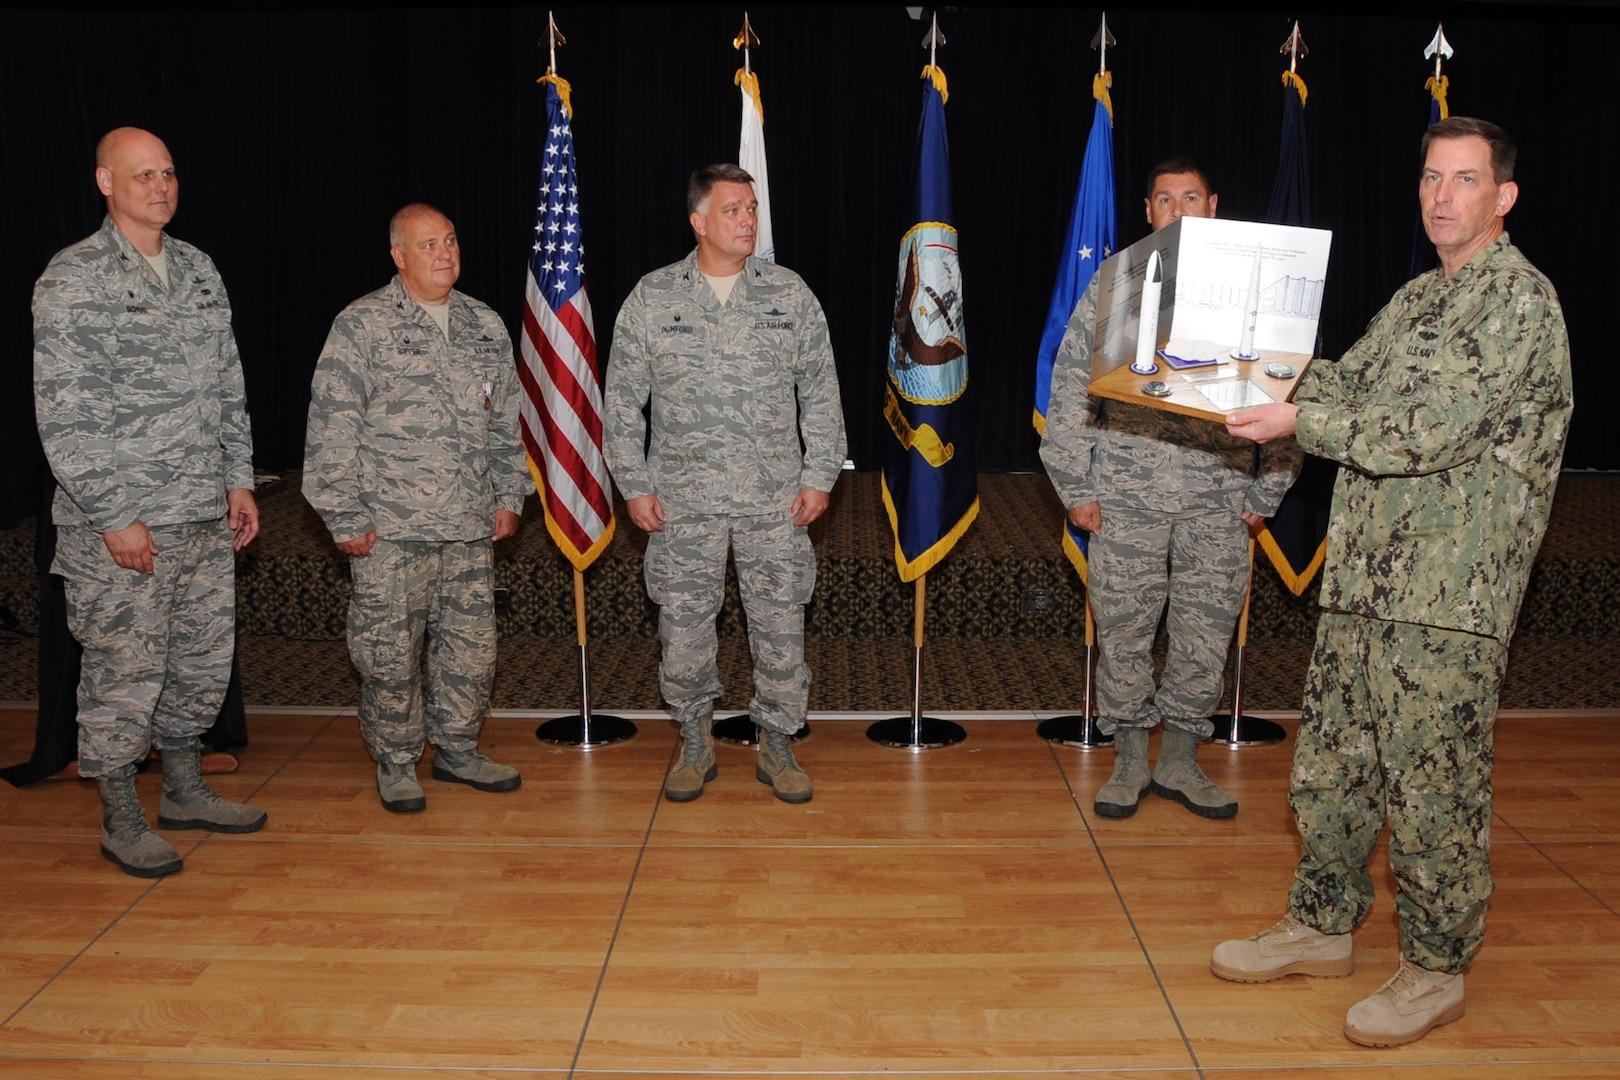 U.S. Navy Vice Admiral David M. Kriete, deputy commander of the U.S. Strategic Command (USSTRATCOM) present a trophy during a luncheon and ceremony at the Patriot Club on Offutt Air Force Base, Neb., Aug. 6, 2018. The 251st Cyberspace Engineering Installation Group, the 220th Engineering Installation Squadron, and the total force, United States Air Force engineering installation community were recognized for providing the infrastructure and cable installation for the new USSTRATCOM Command and Control facility over the past five years. (USSTRATCOM photo by Steve Cunningham)